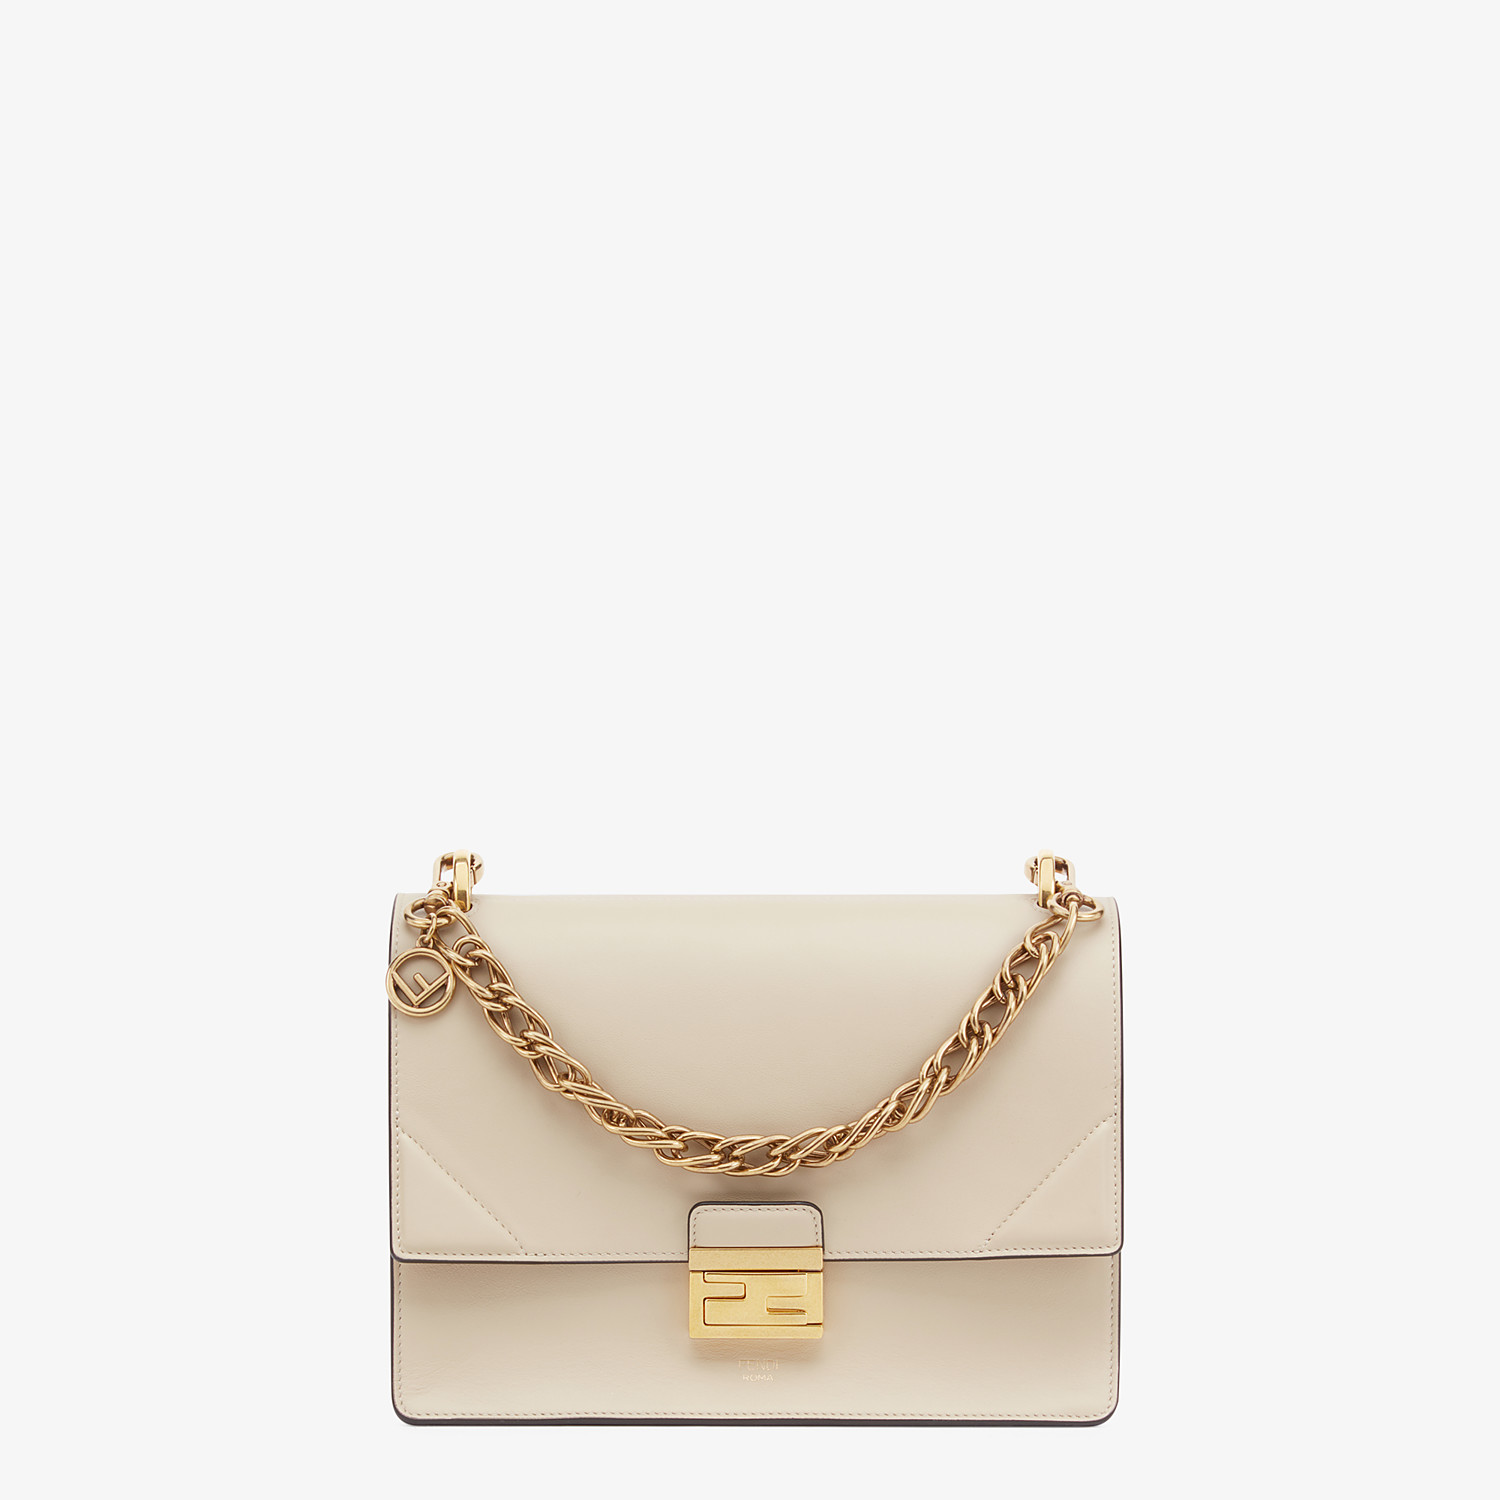 FENDI KAN U - Beige leather bag - view 1 detail